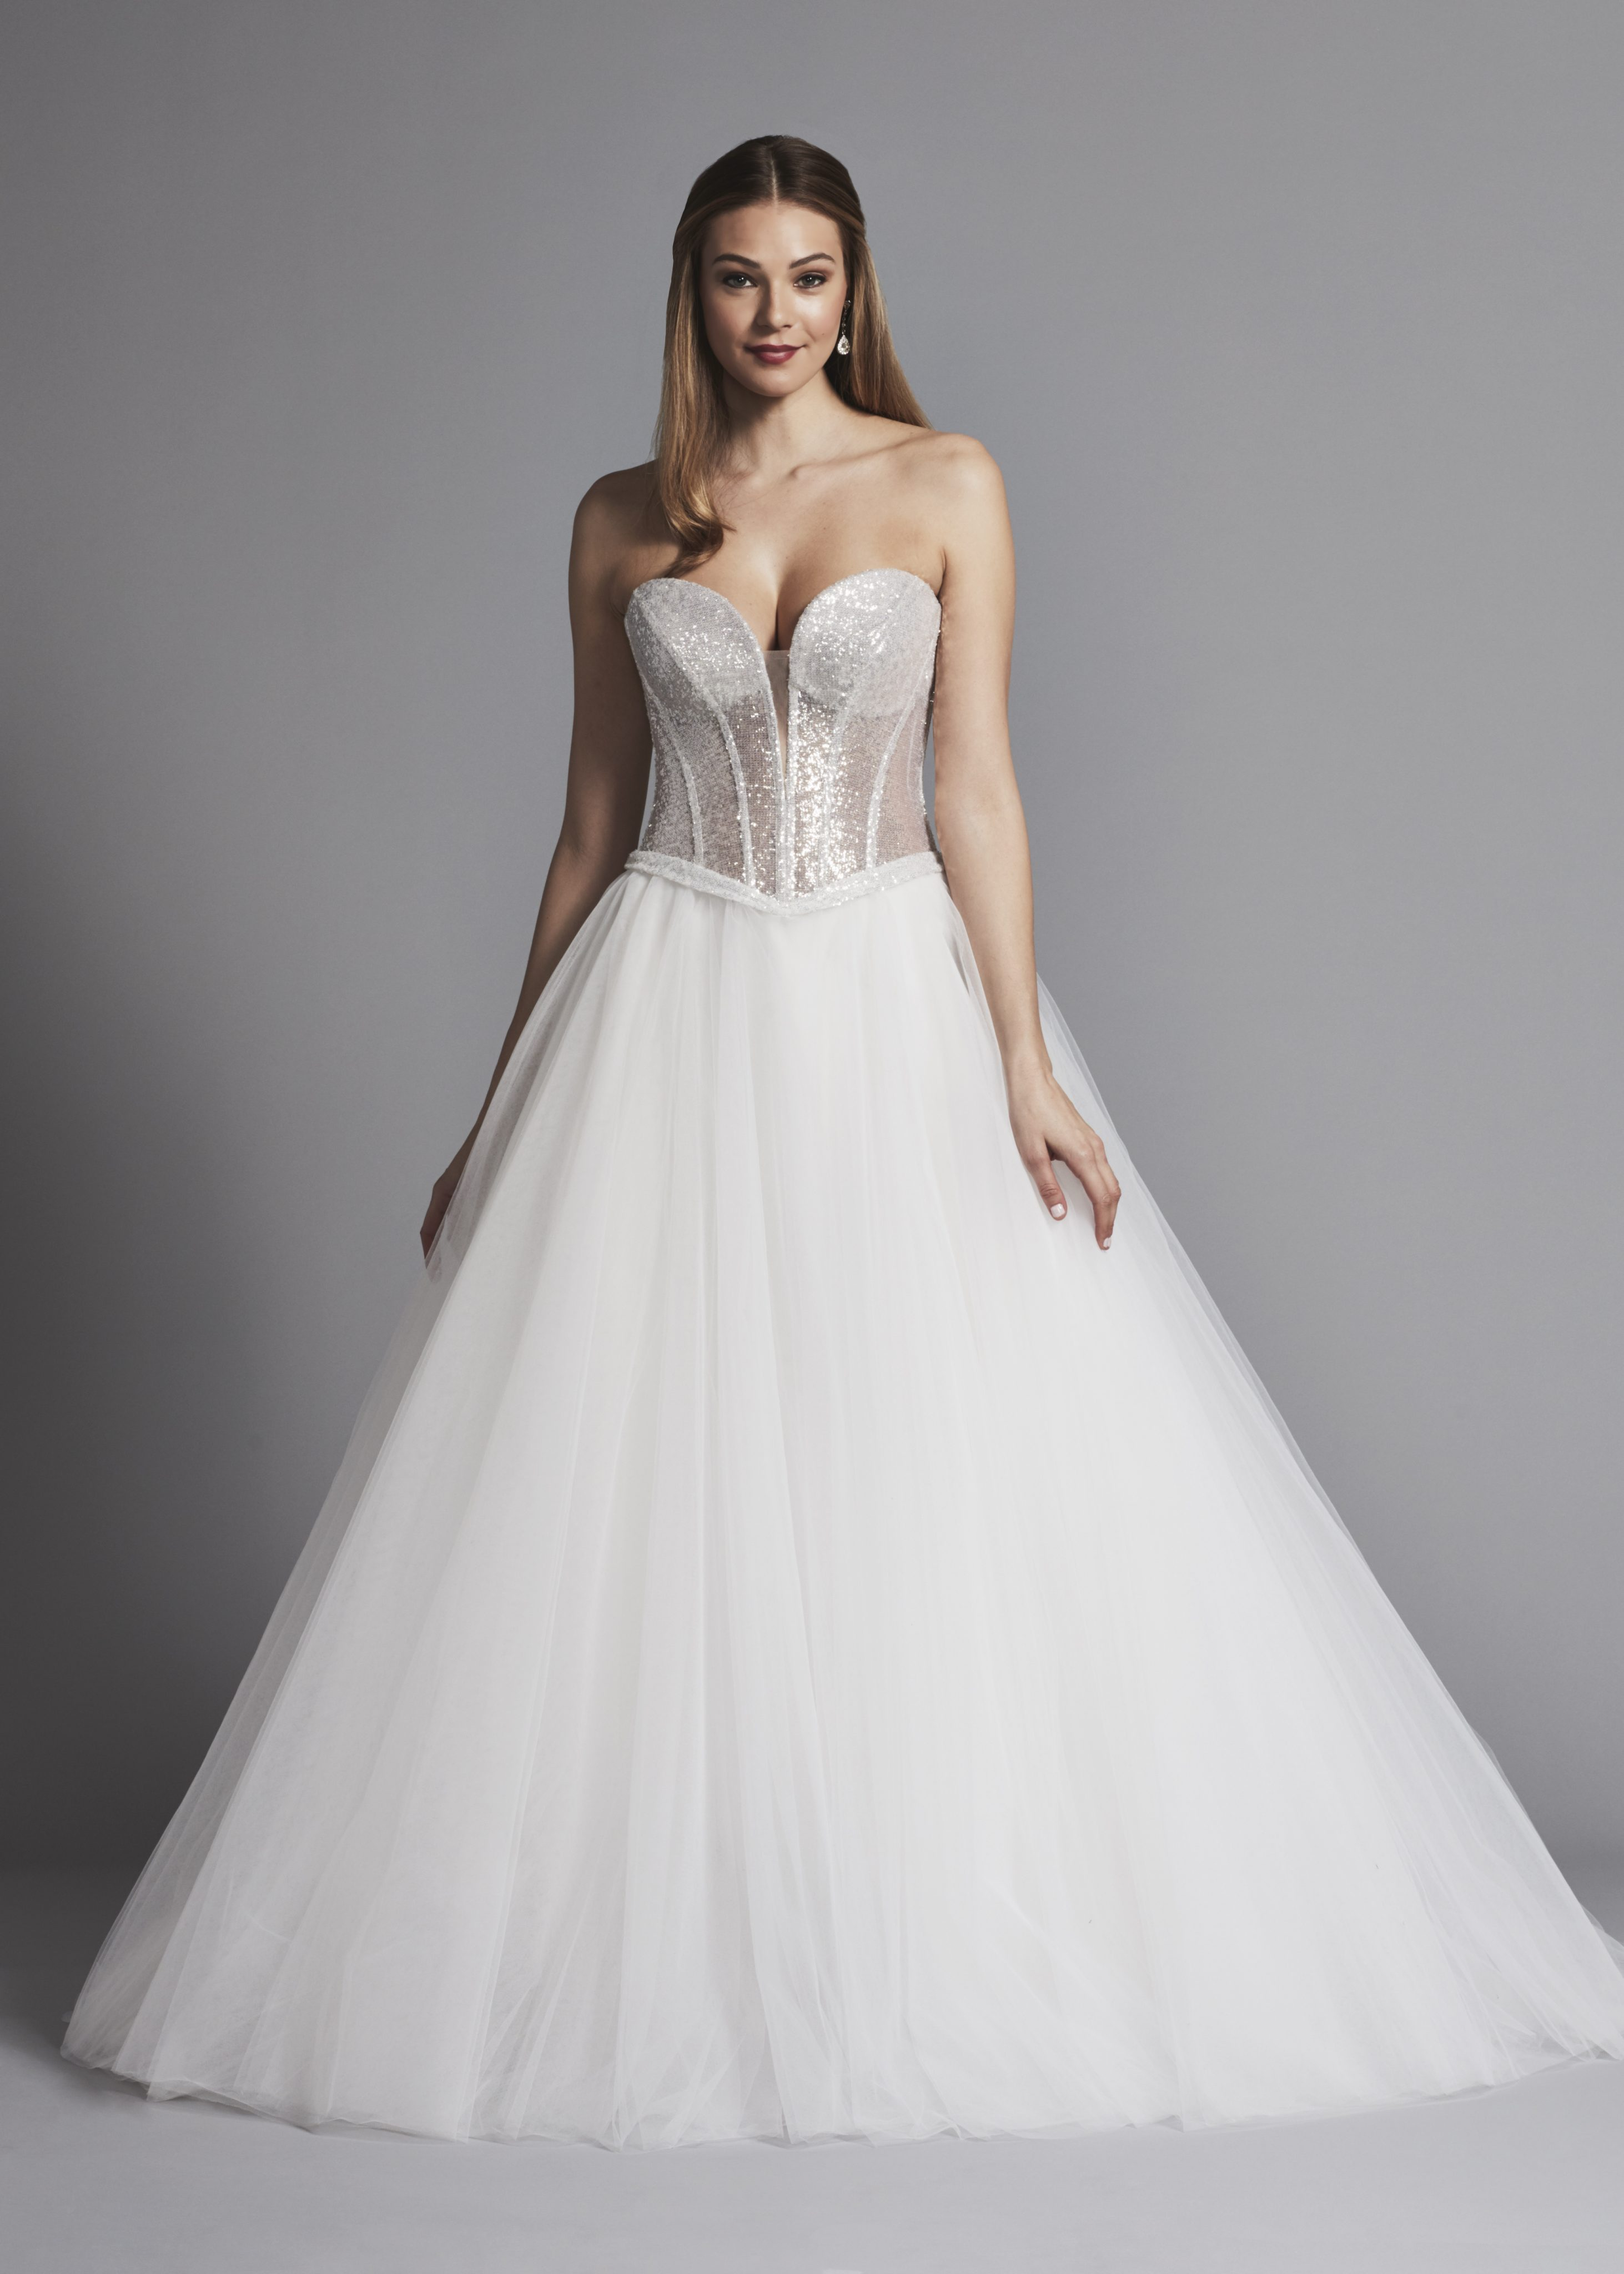 Glitter Strapless Ball Gown Wedding Dress With Corset Bodice And Flower Applique  Kleinfeld Bridal